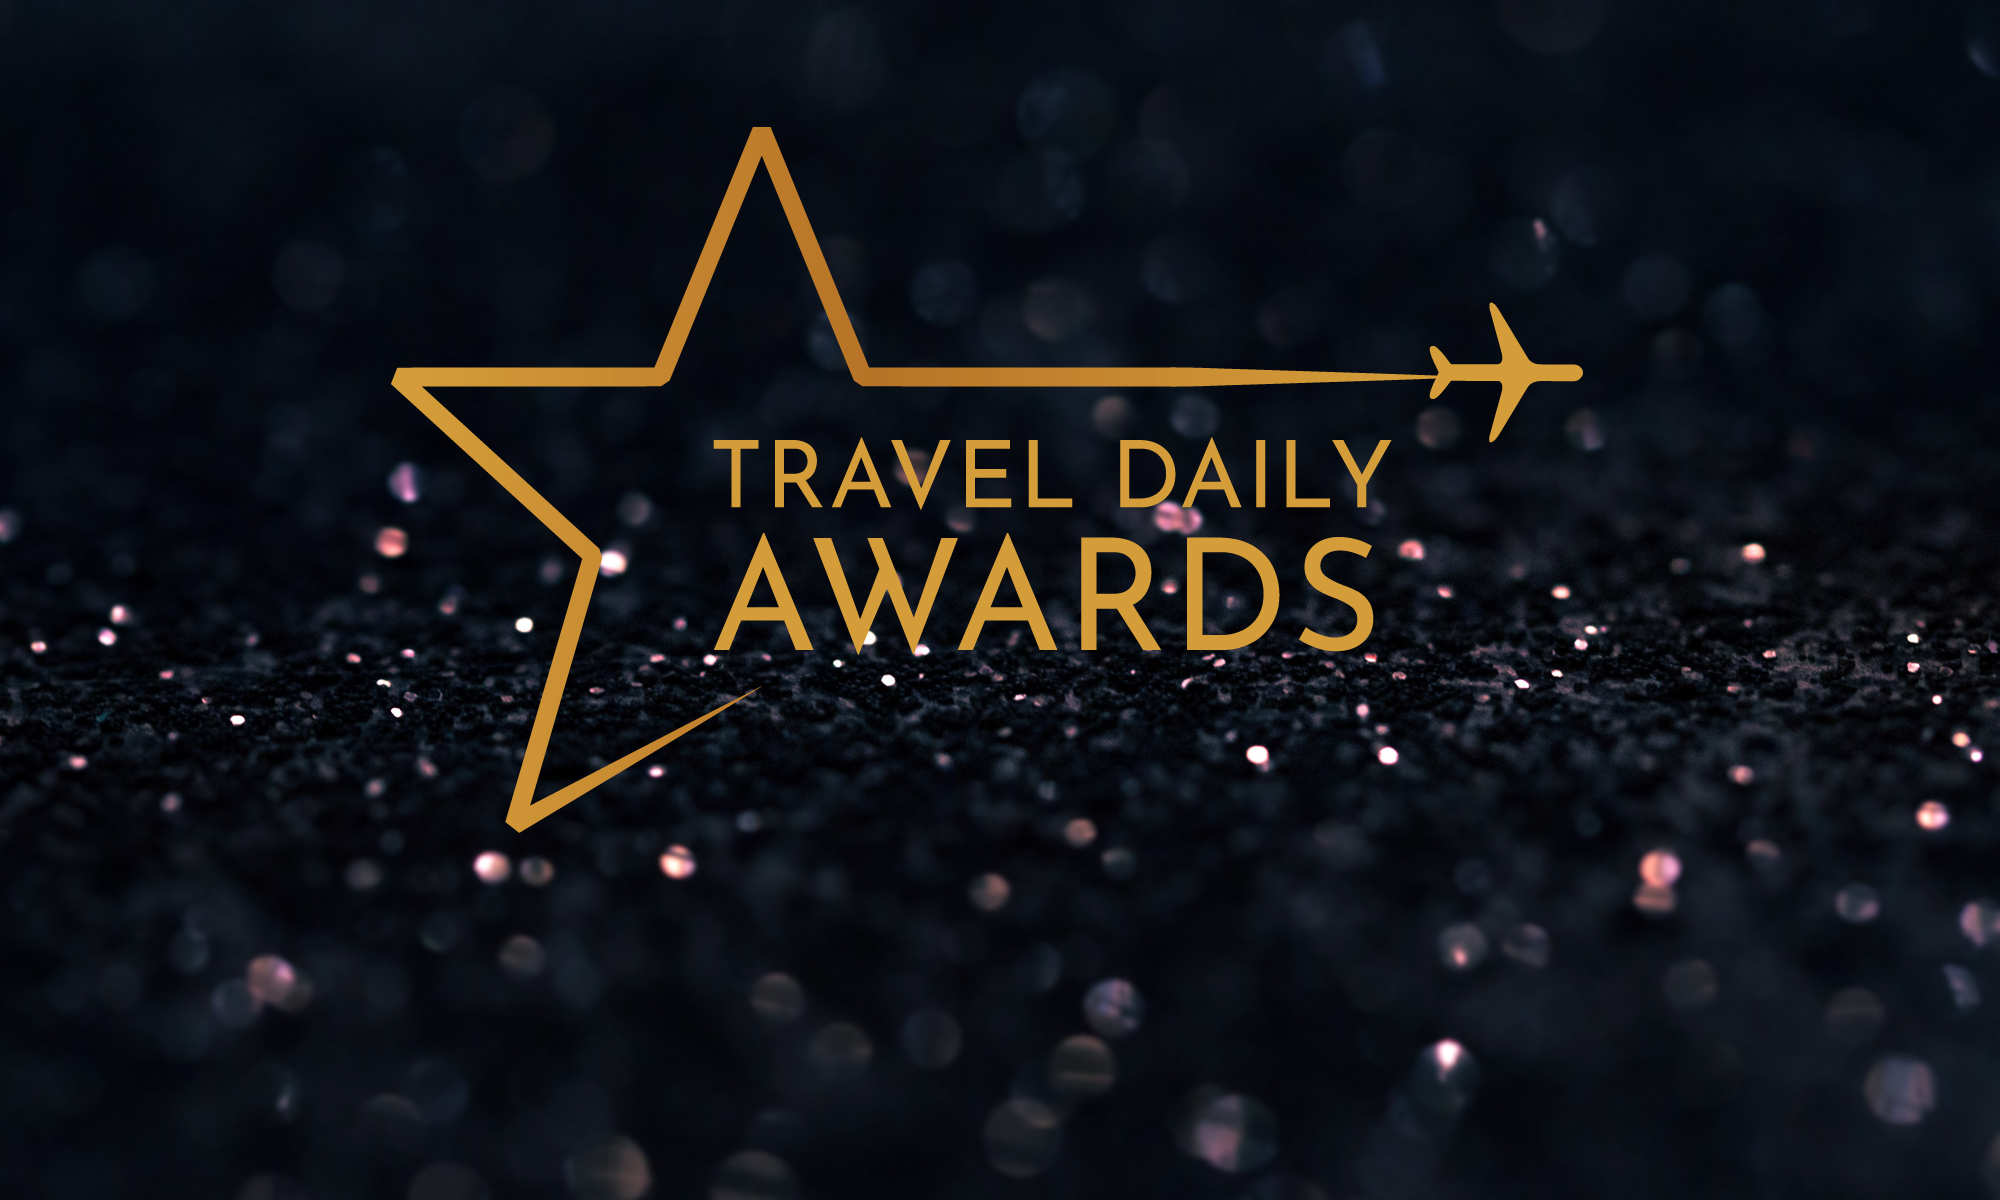 The 2020 Travel Daily Awards